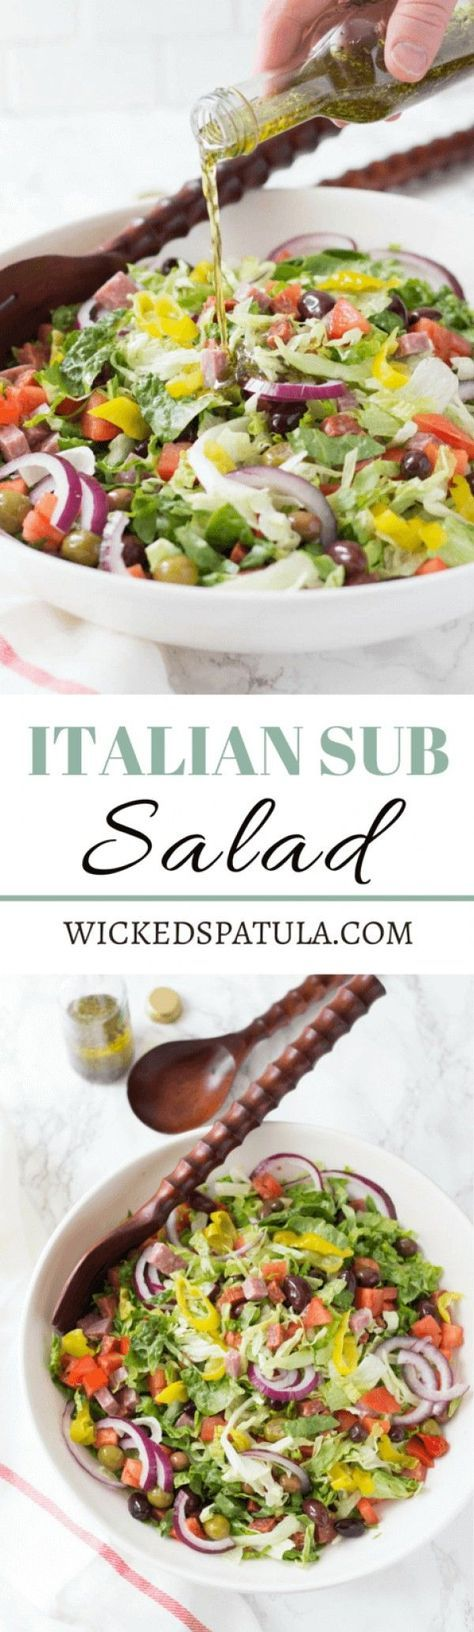 Get the recipe ♥️ Italian Sub Salad Recipe